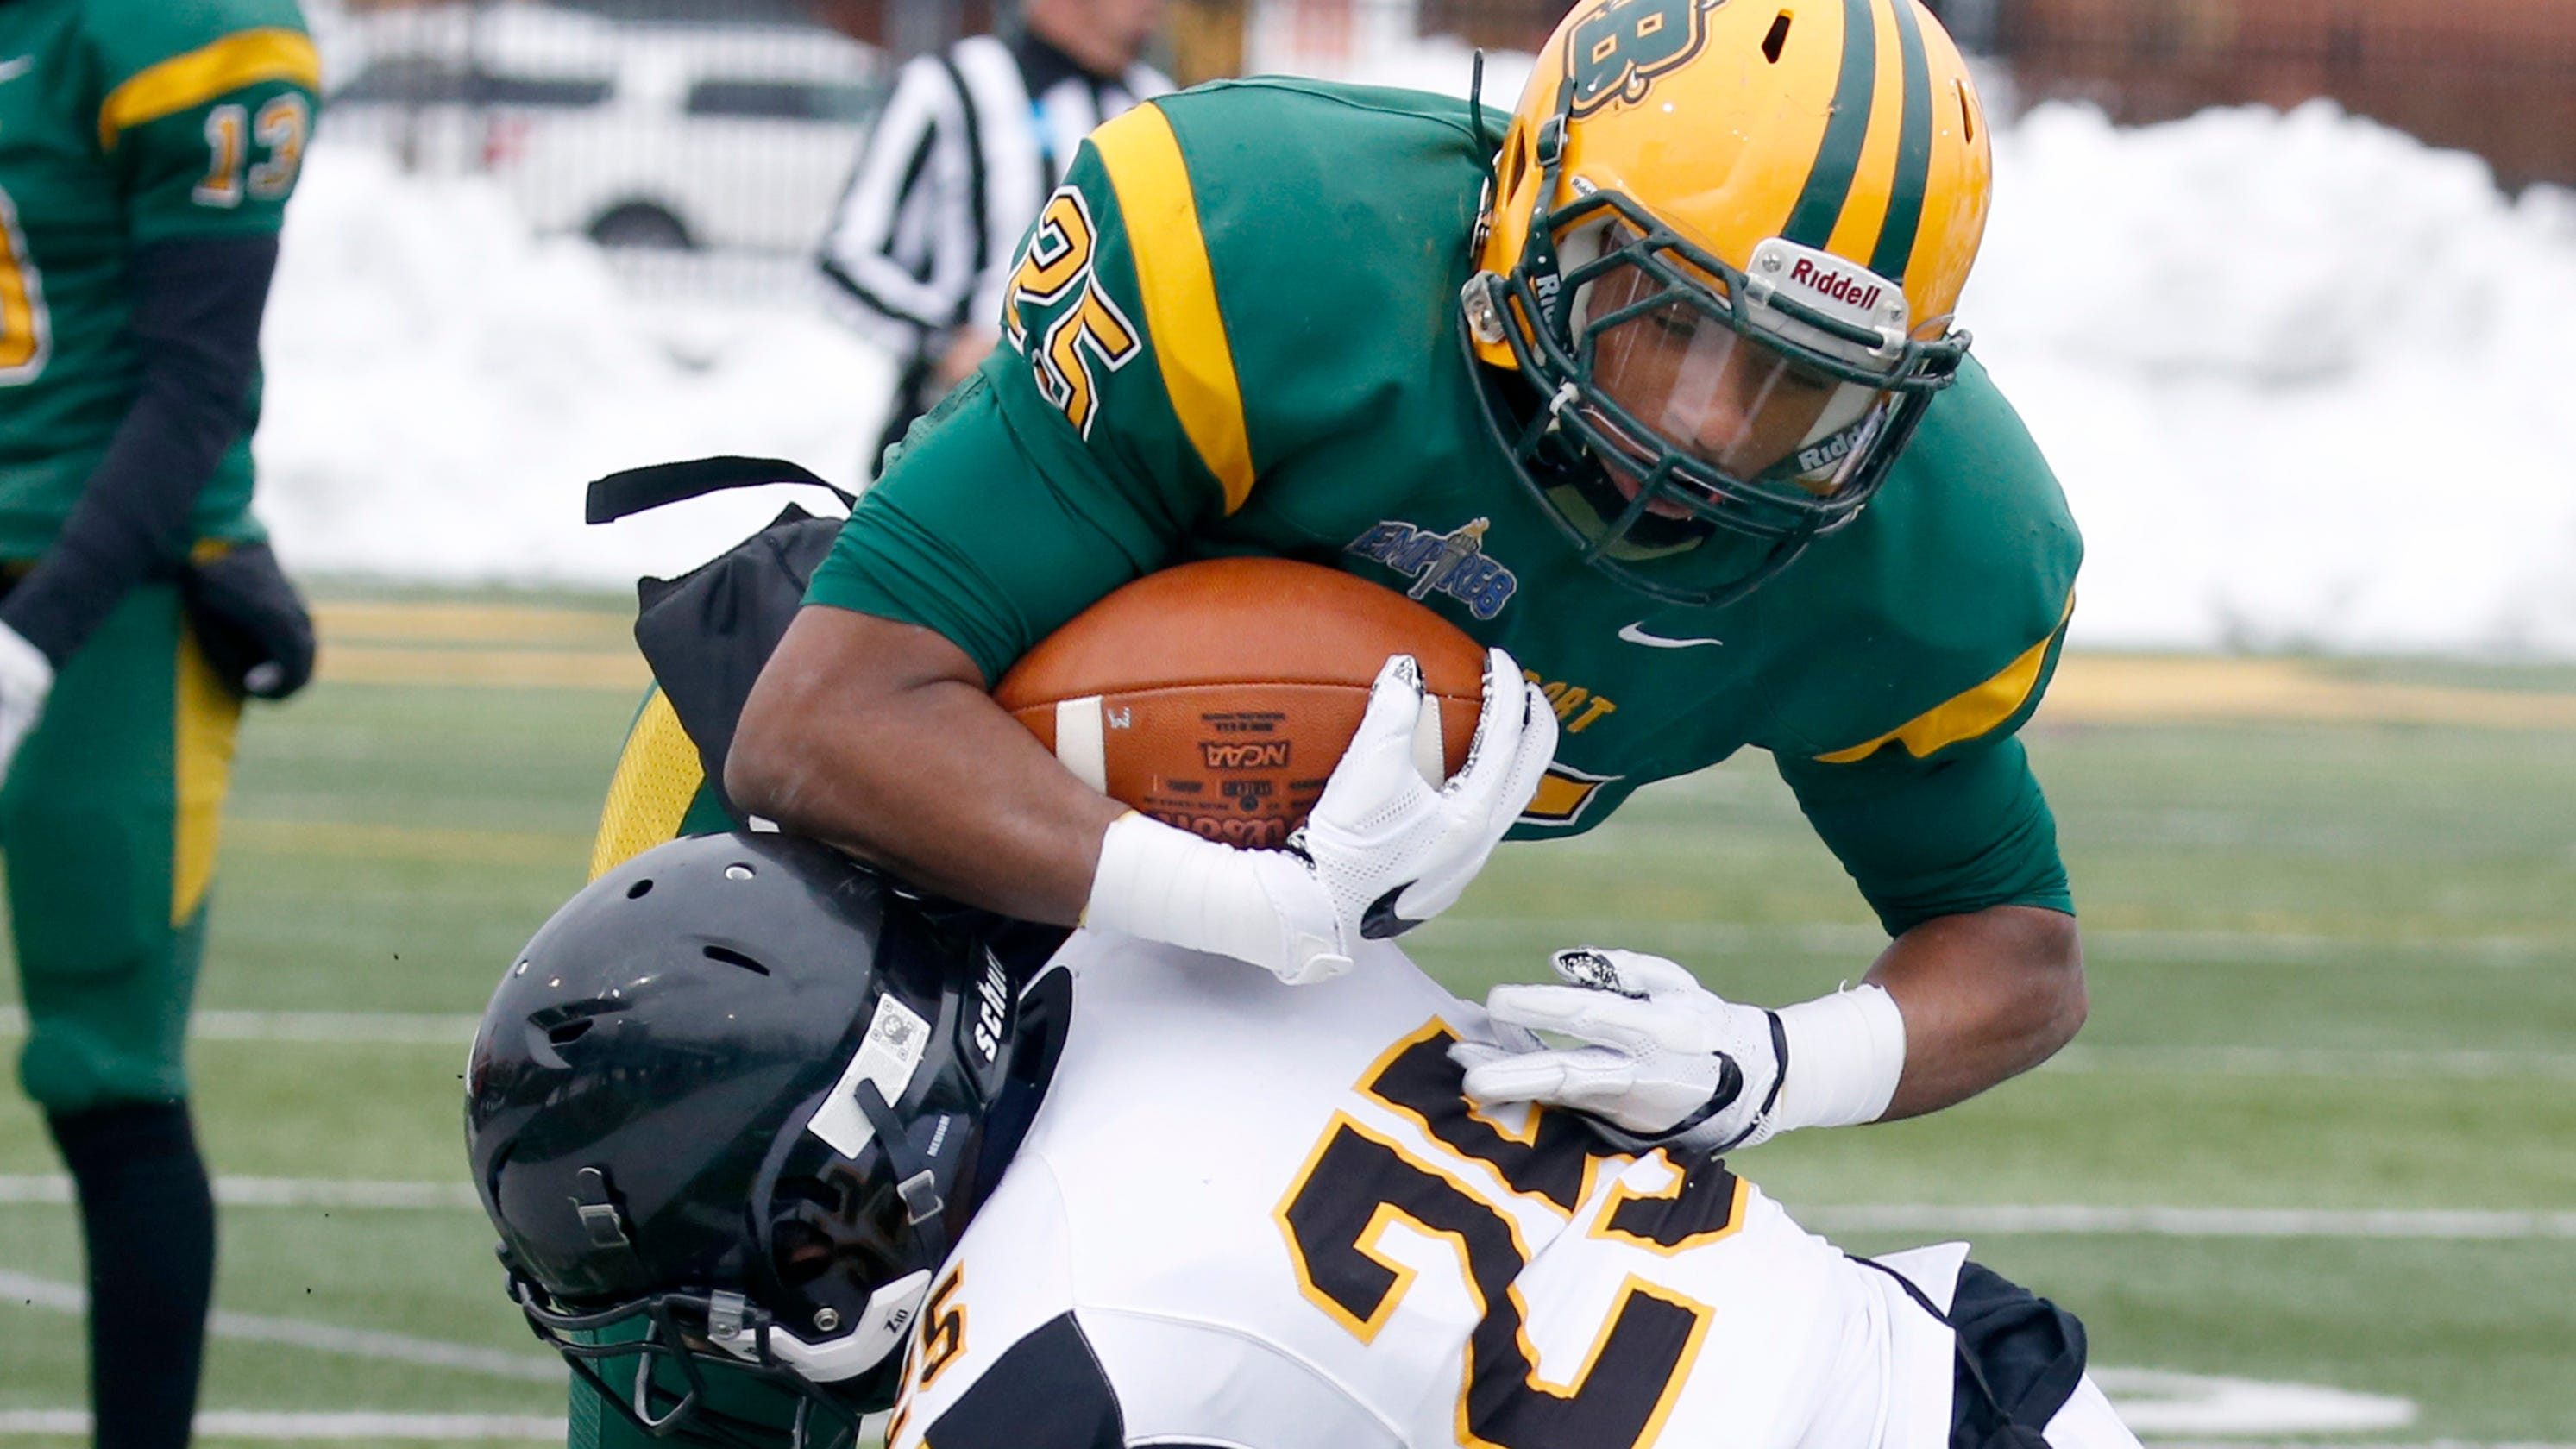 Brockport upset in second round of NCAA Division III ...